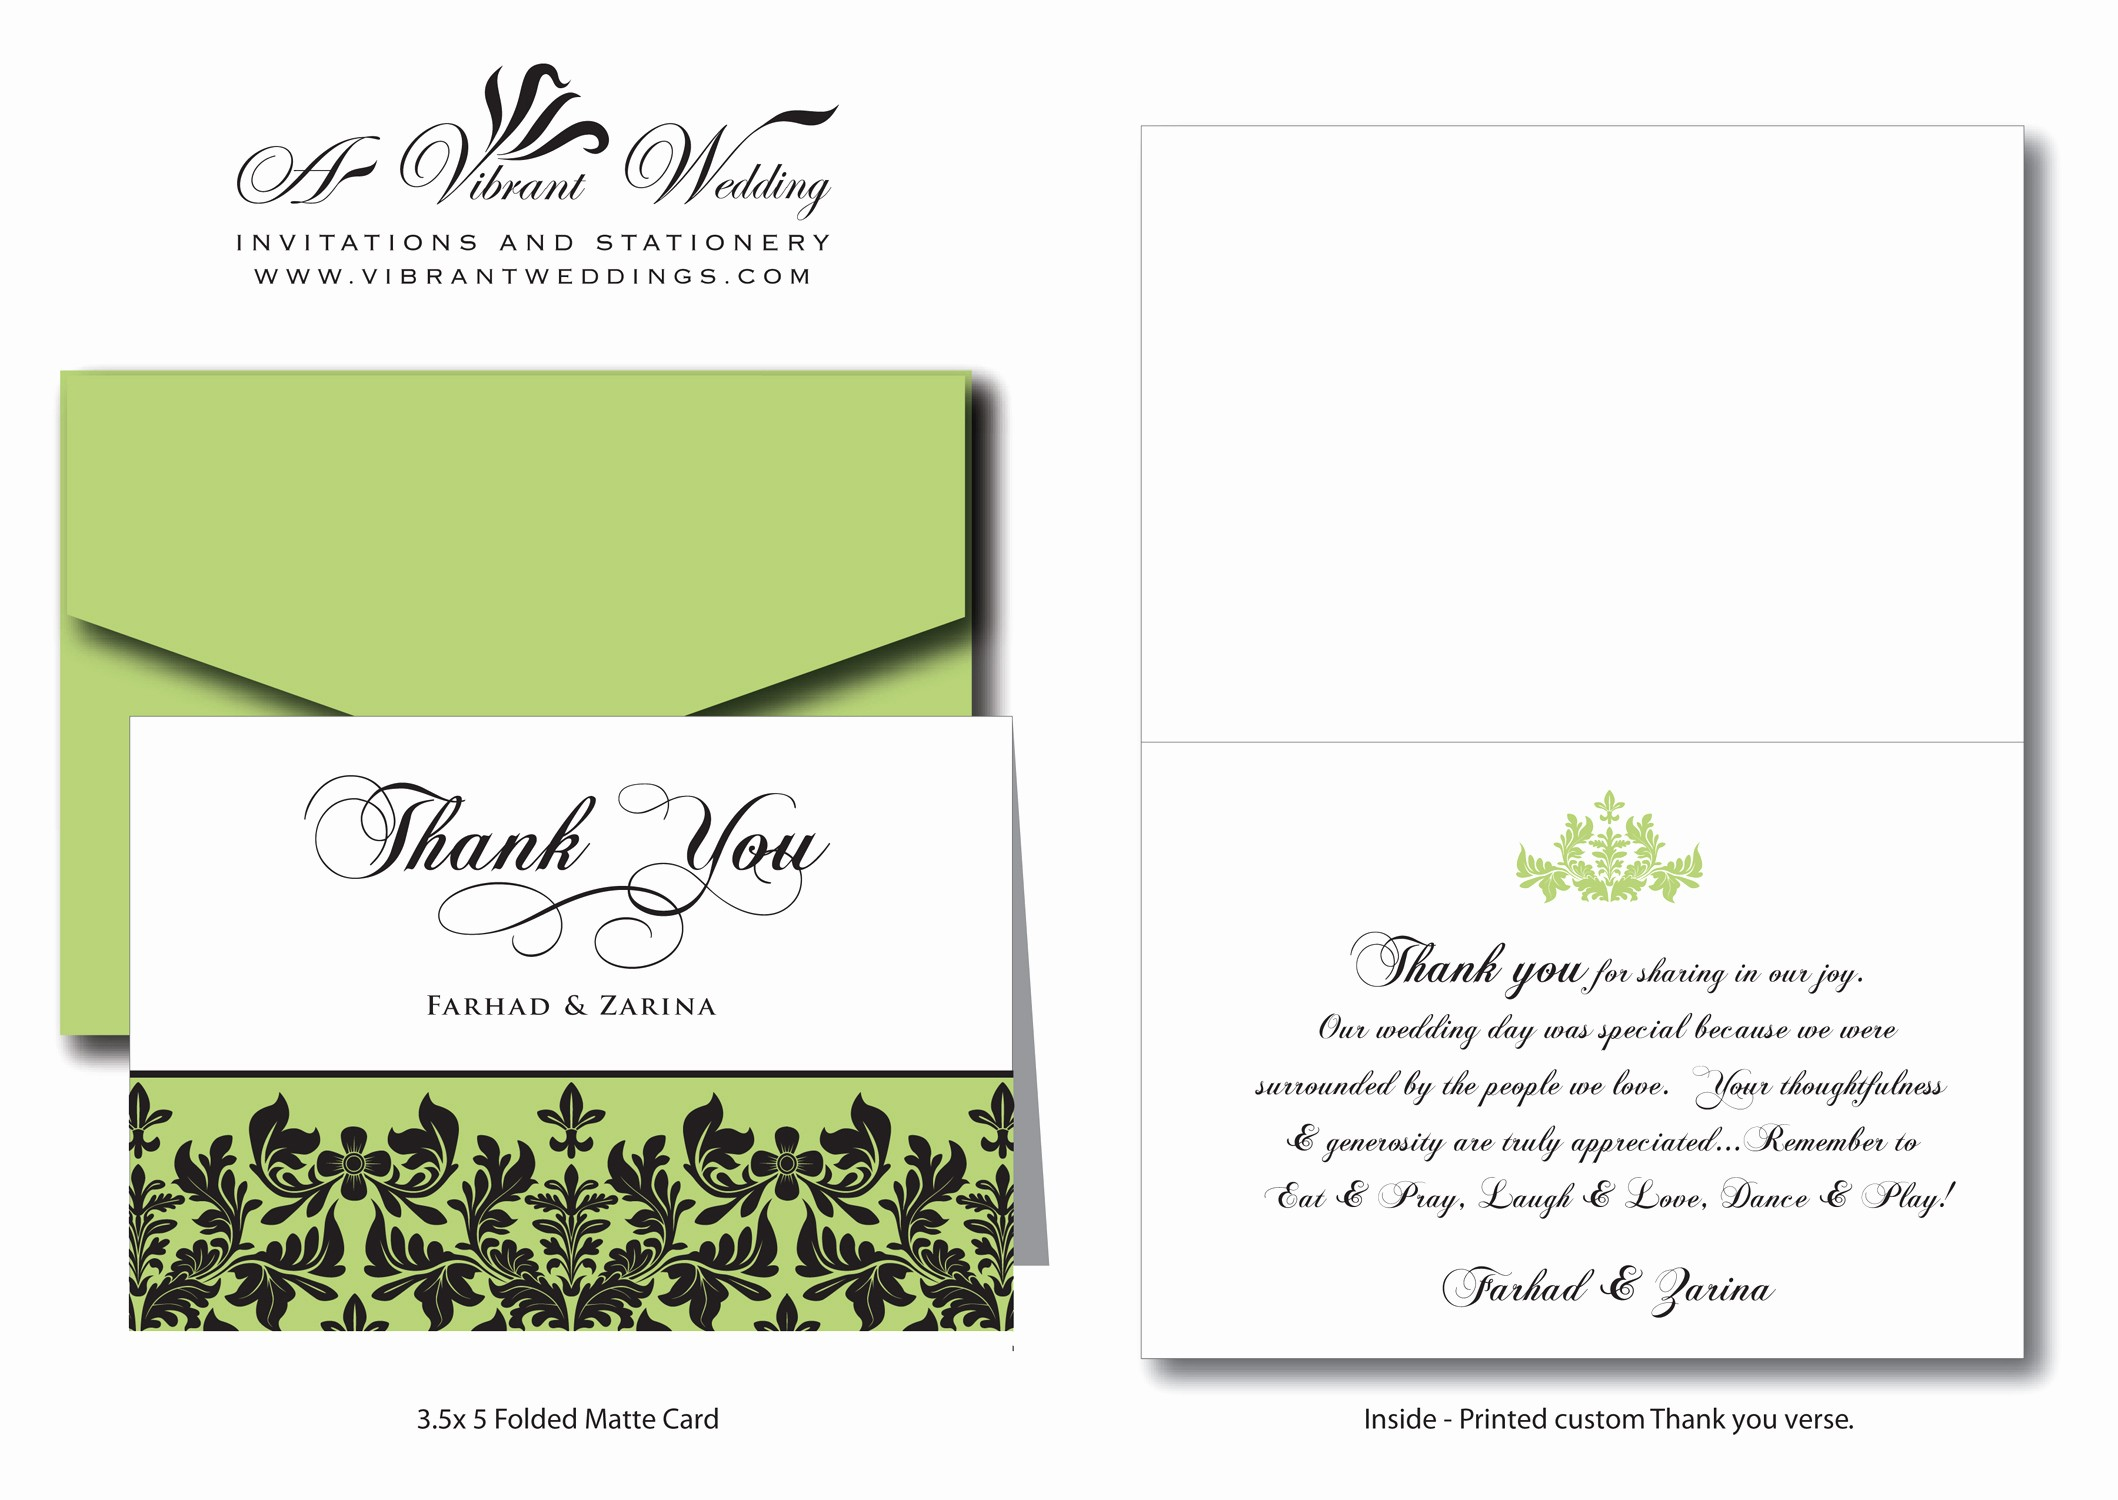 Words for Thank You Card Elegant Thank You Wording – A Vibrant Wedding